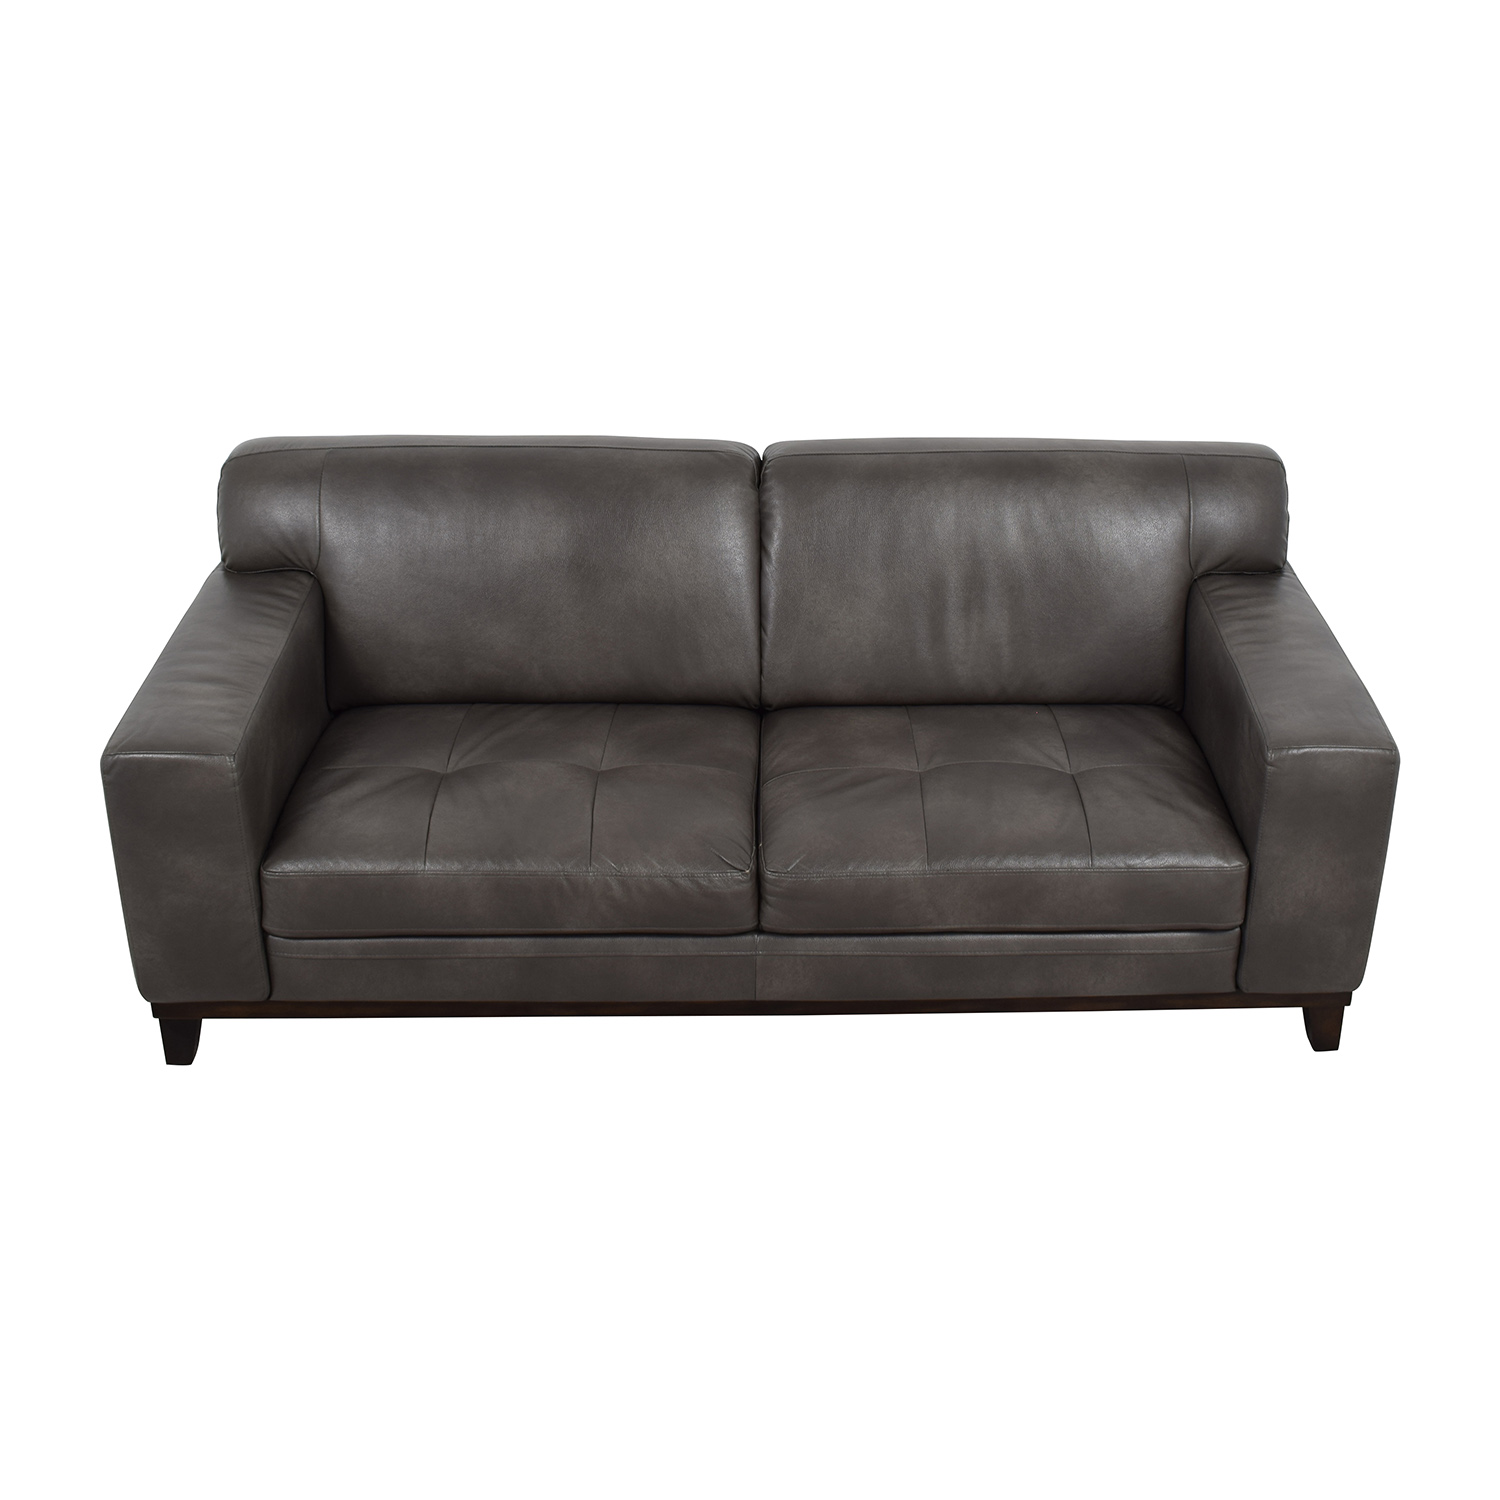 Raymour & Flanigan Raymour & Flanigan Grey Leather Couch price